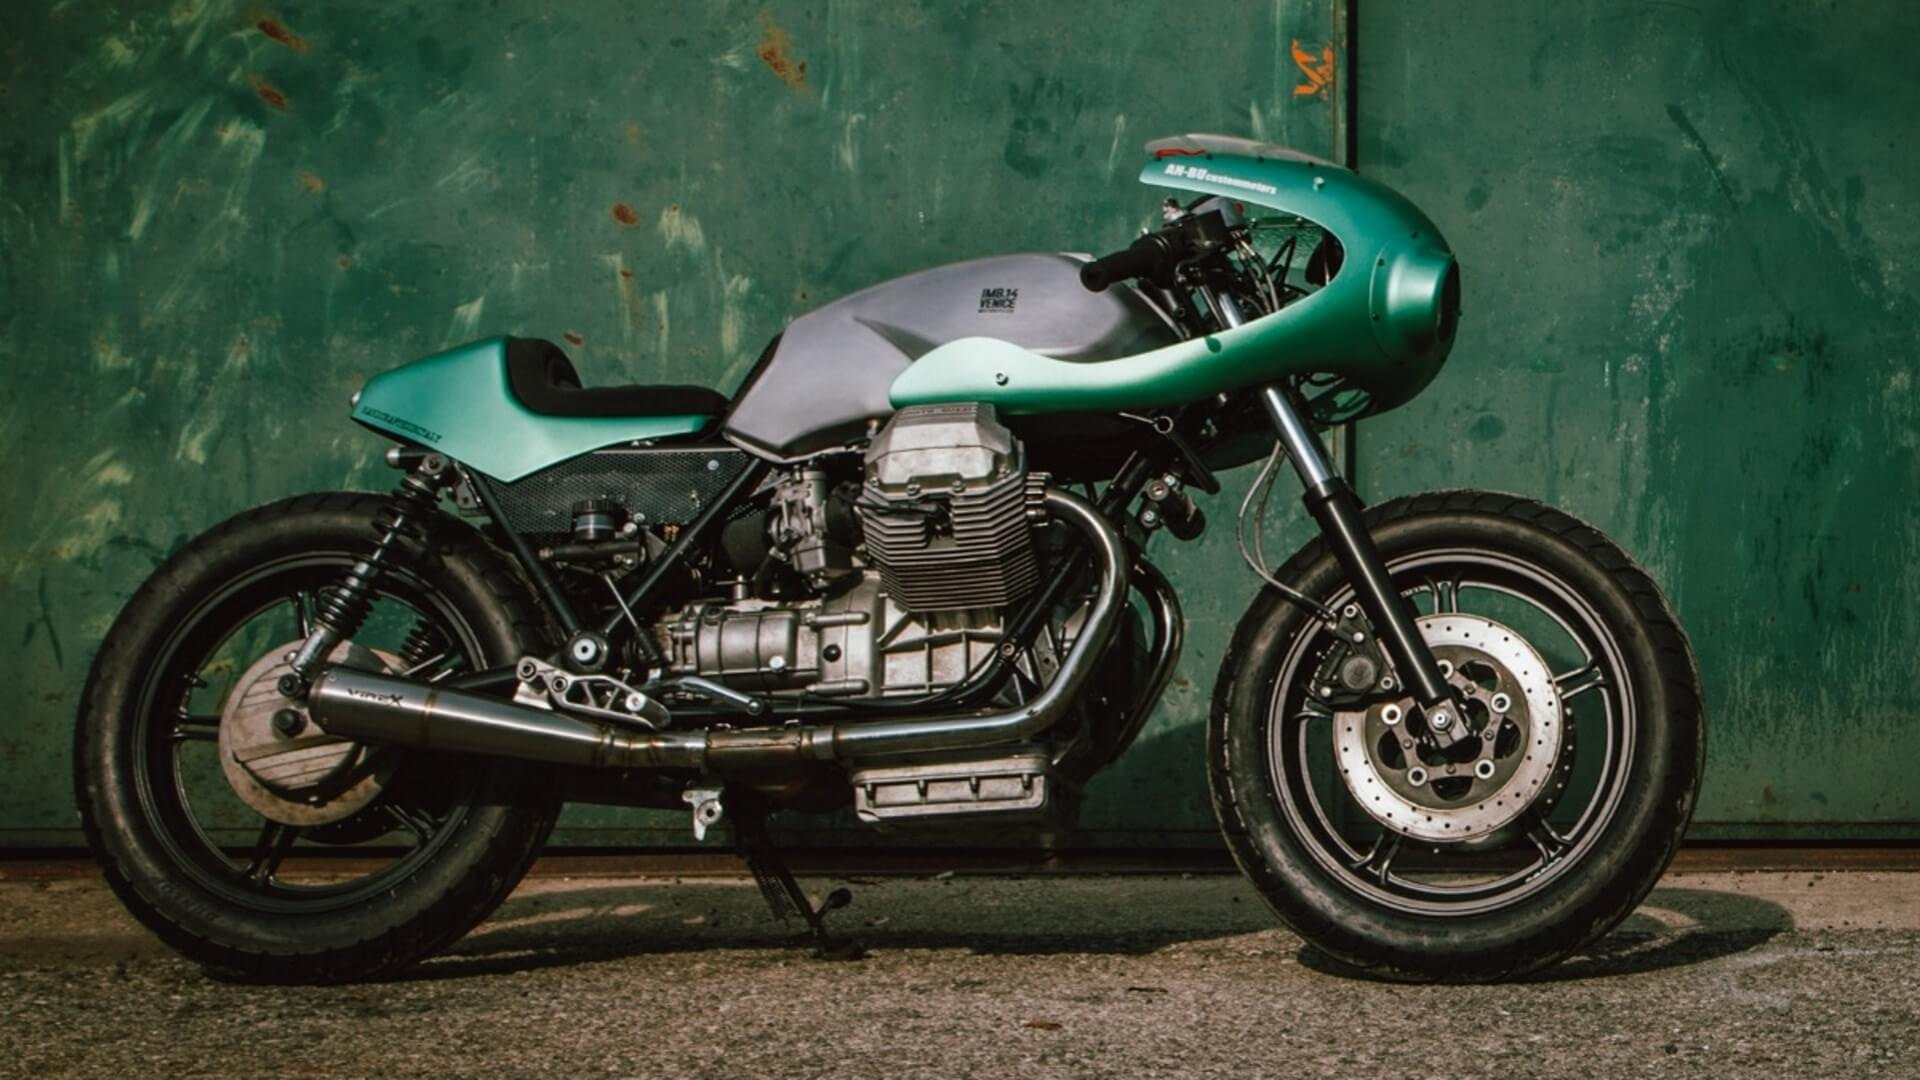 Moto Guzzi SP3 Imbarcadero 14 & An-Bu Custom Motors